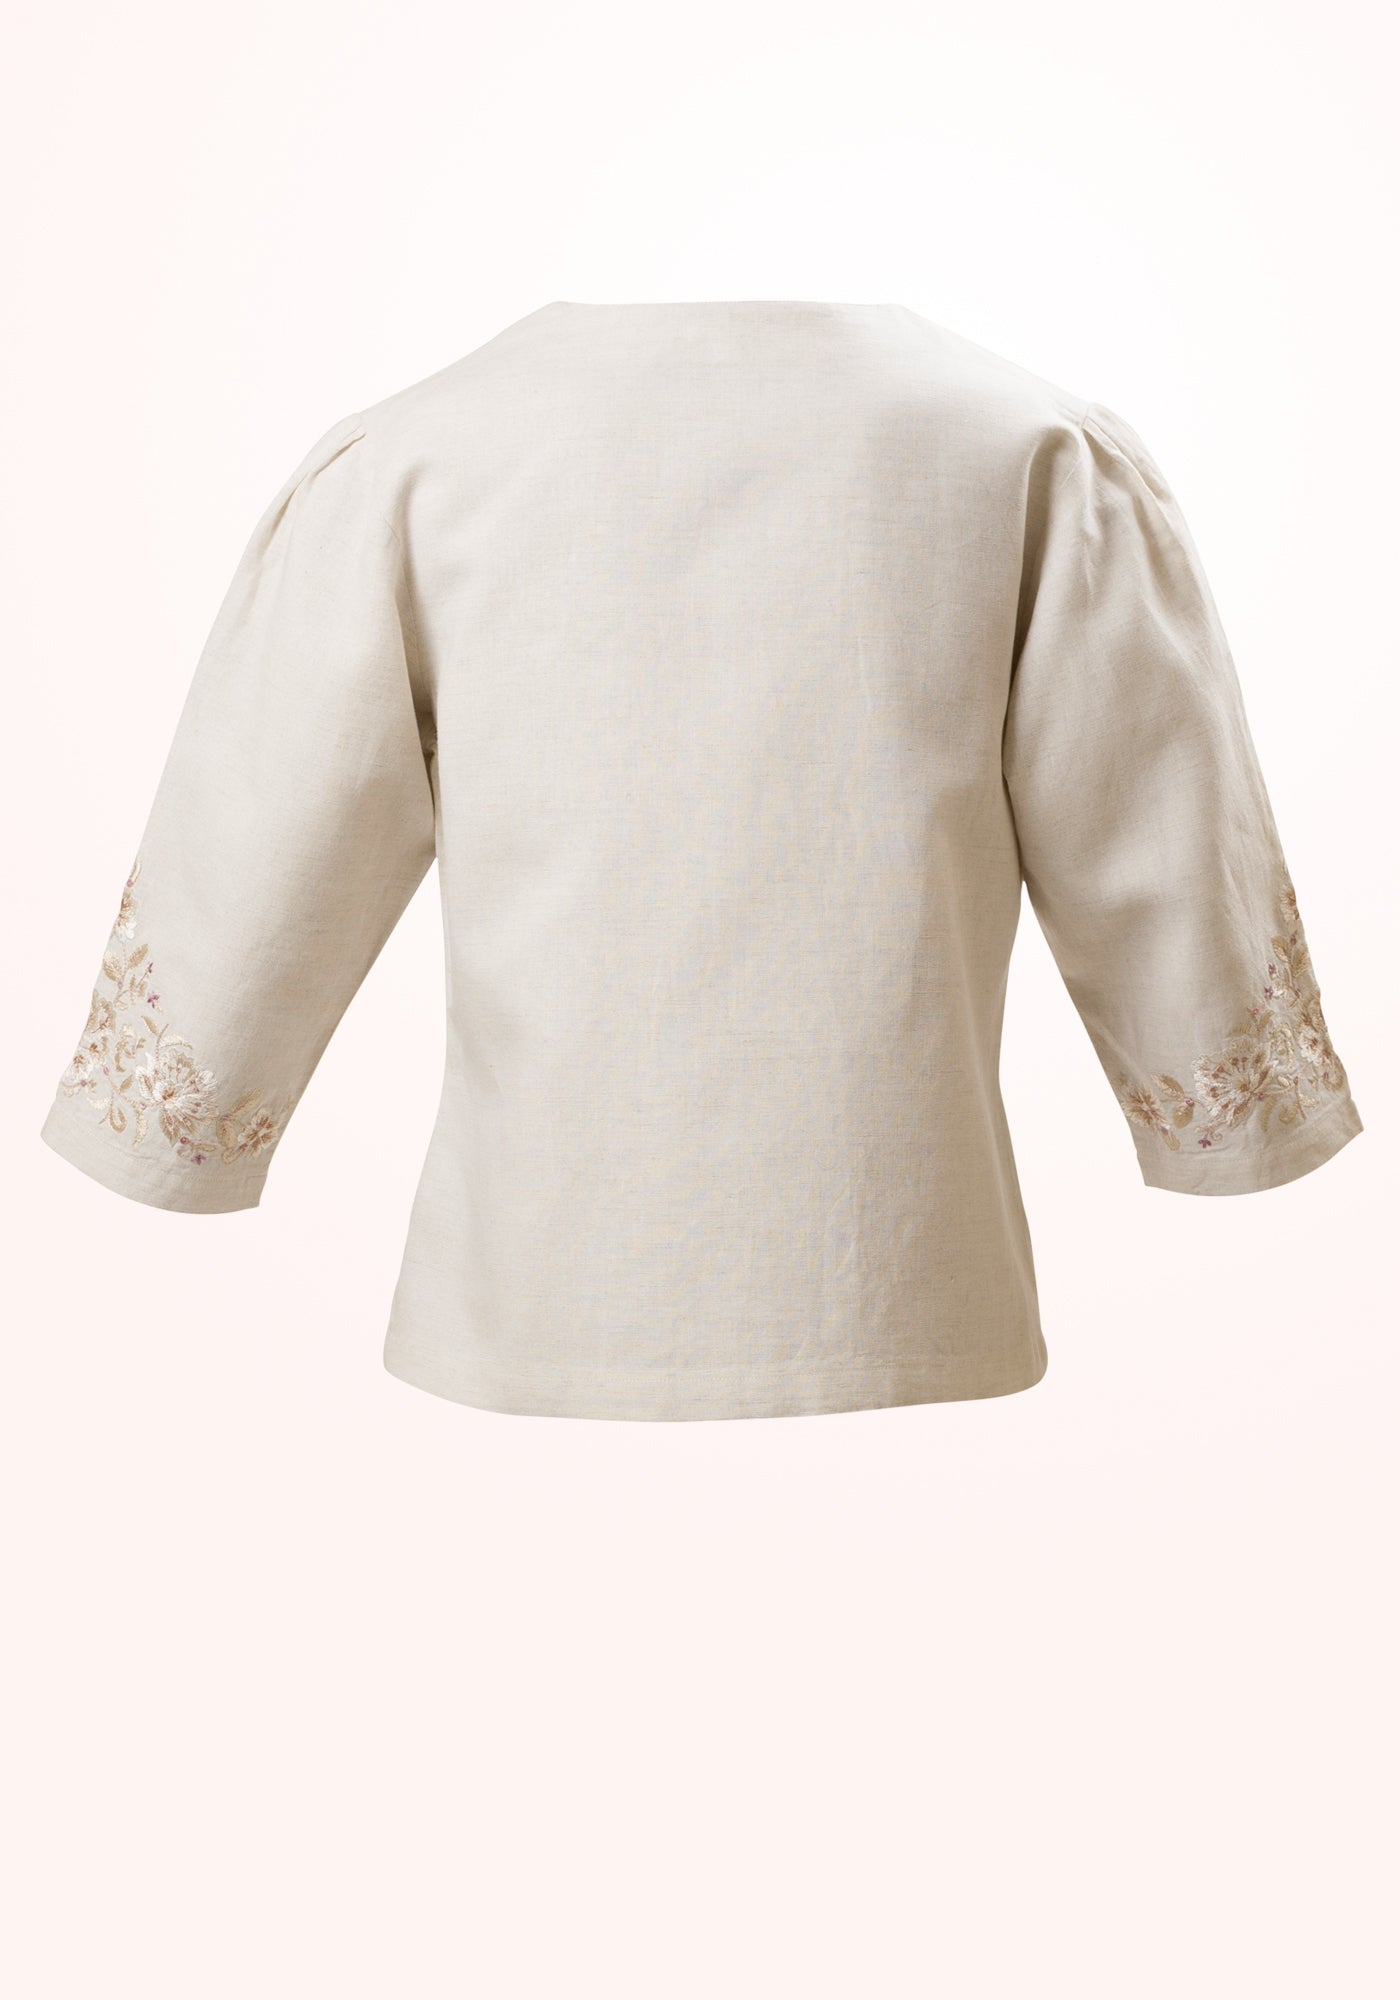 French Vanilla Girls Jacket in Embroidered Linen - MINC ecofashion